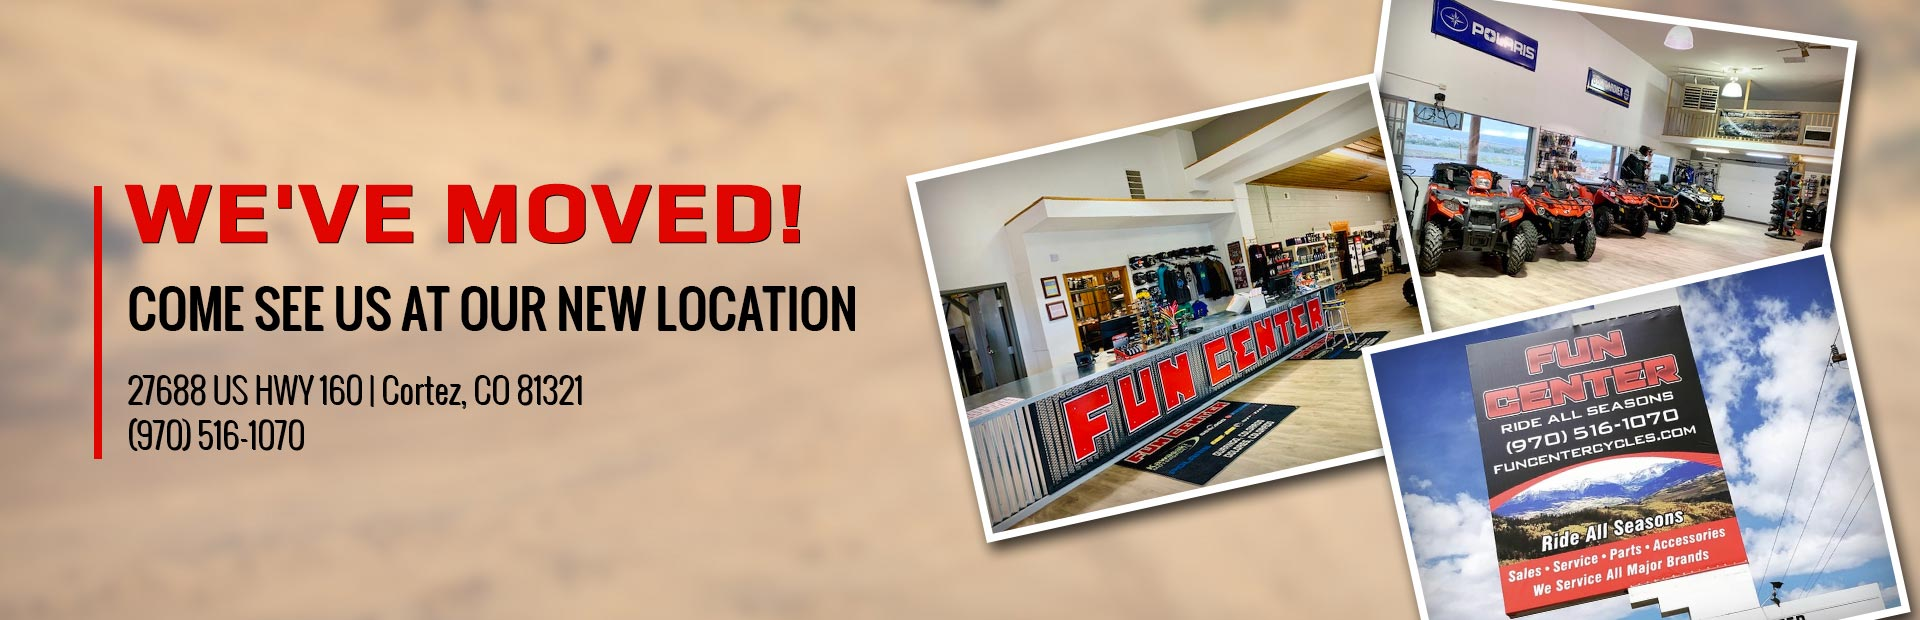 We've moved! Come see us at your new location!